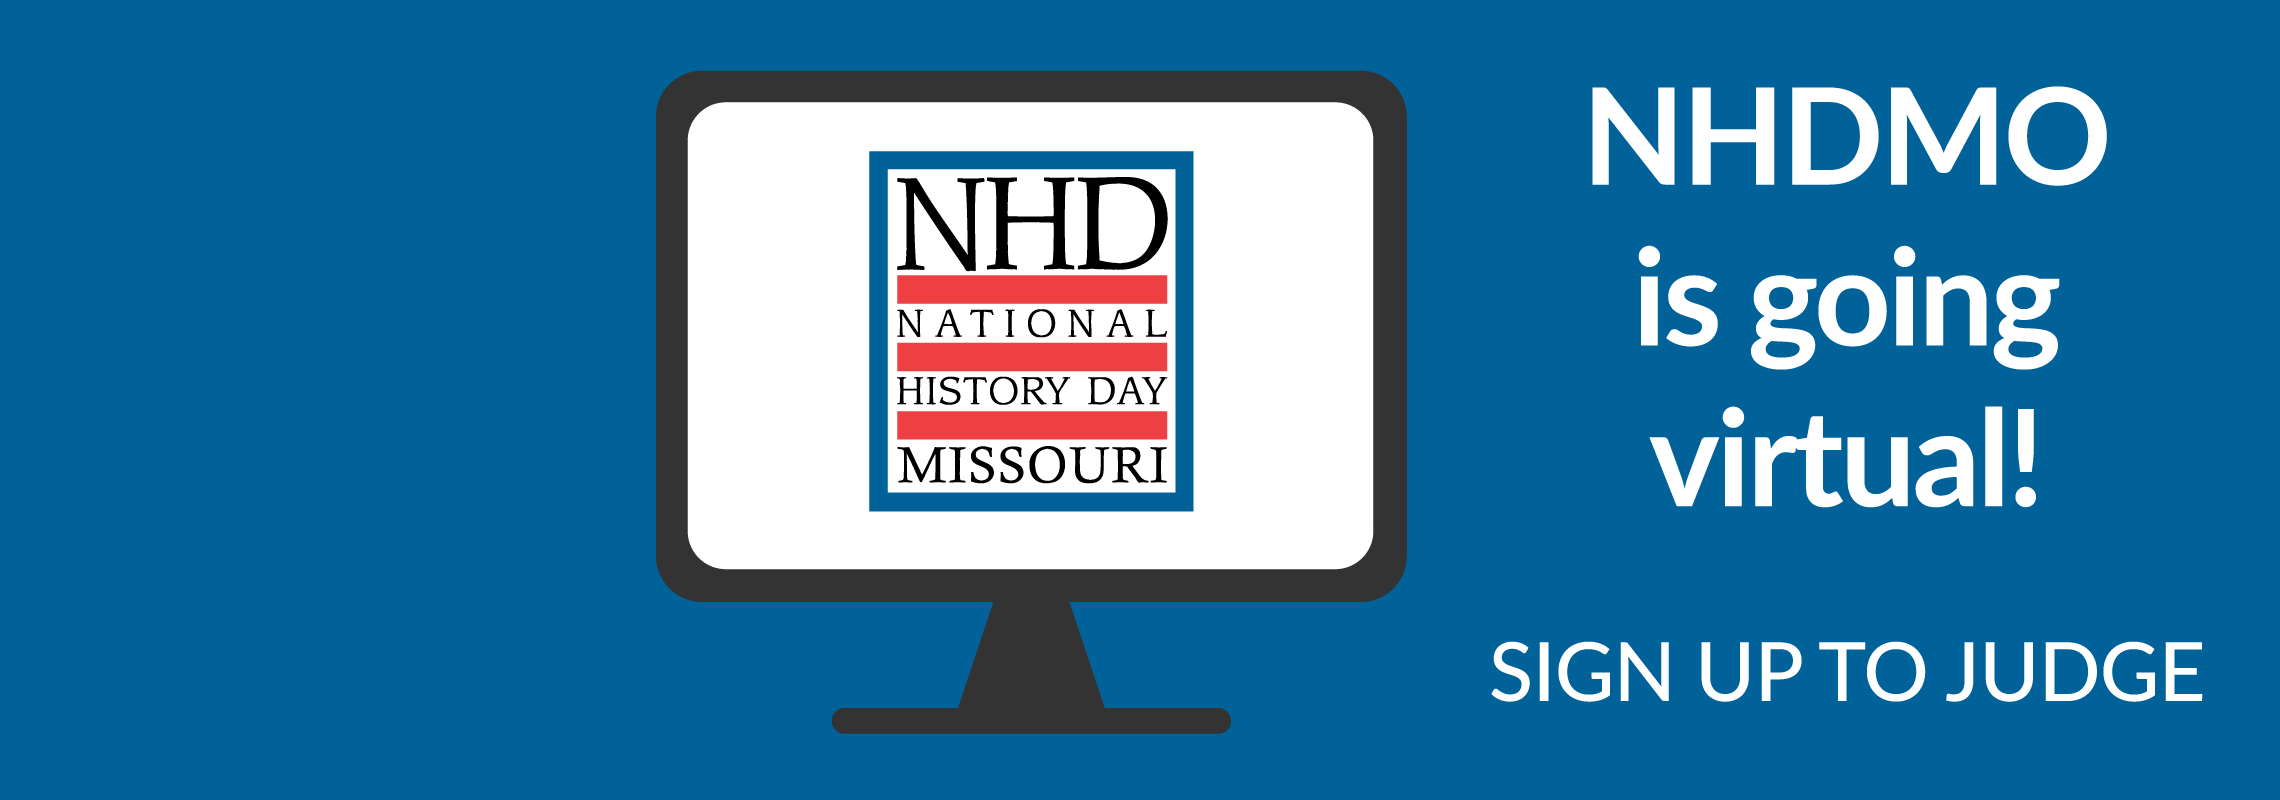 NHDMO is going virtual! Sign up to judge